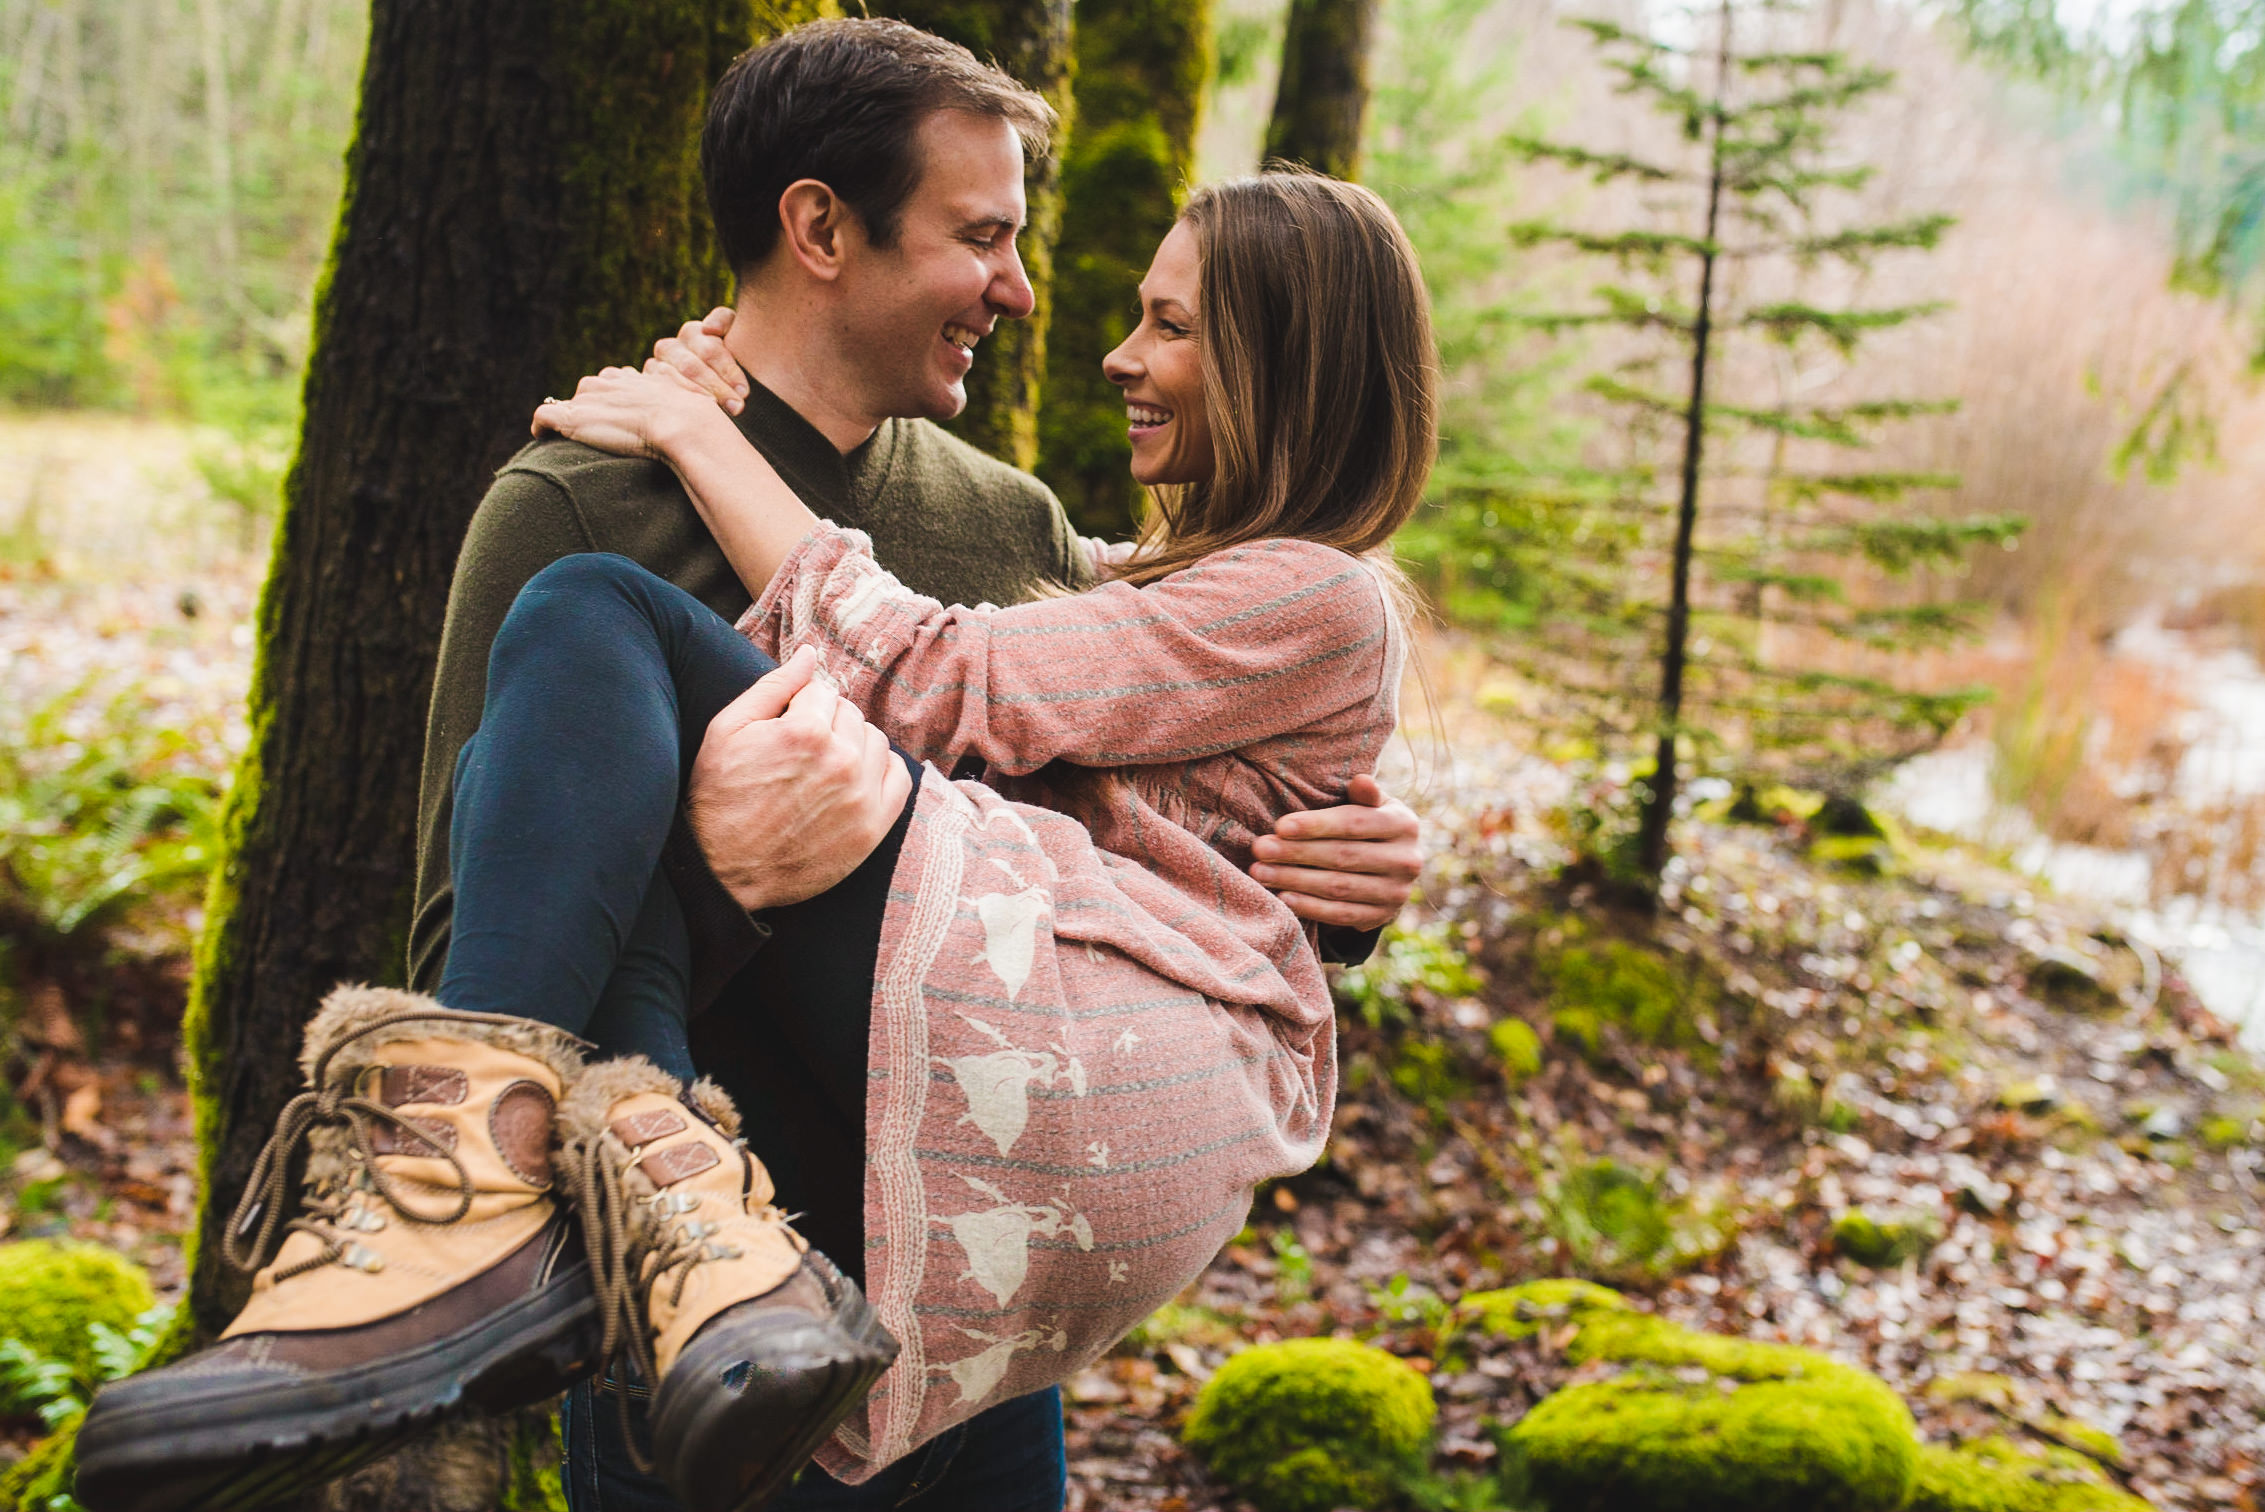 Engagement Photographer in Portland Mantas Kubilinskas-11.jpg